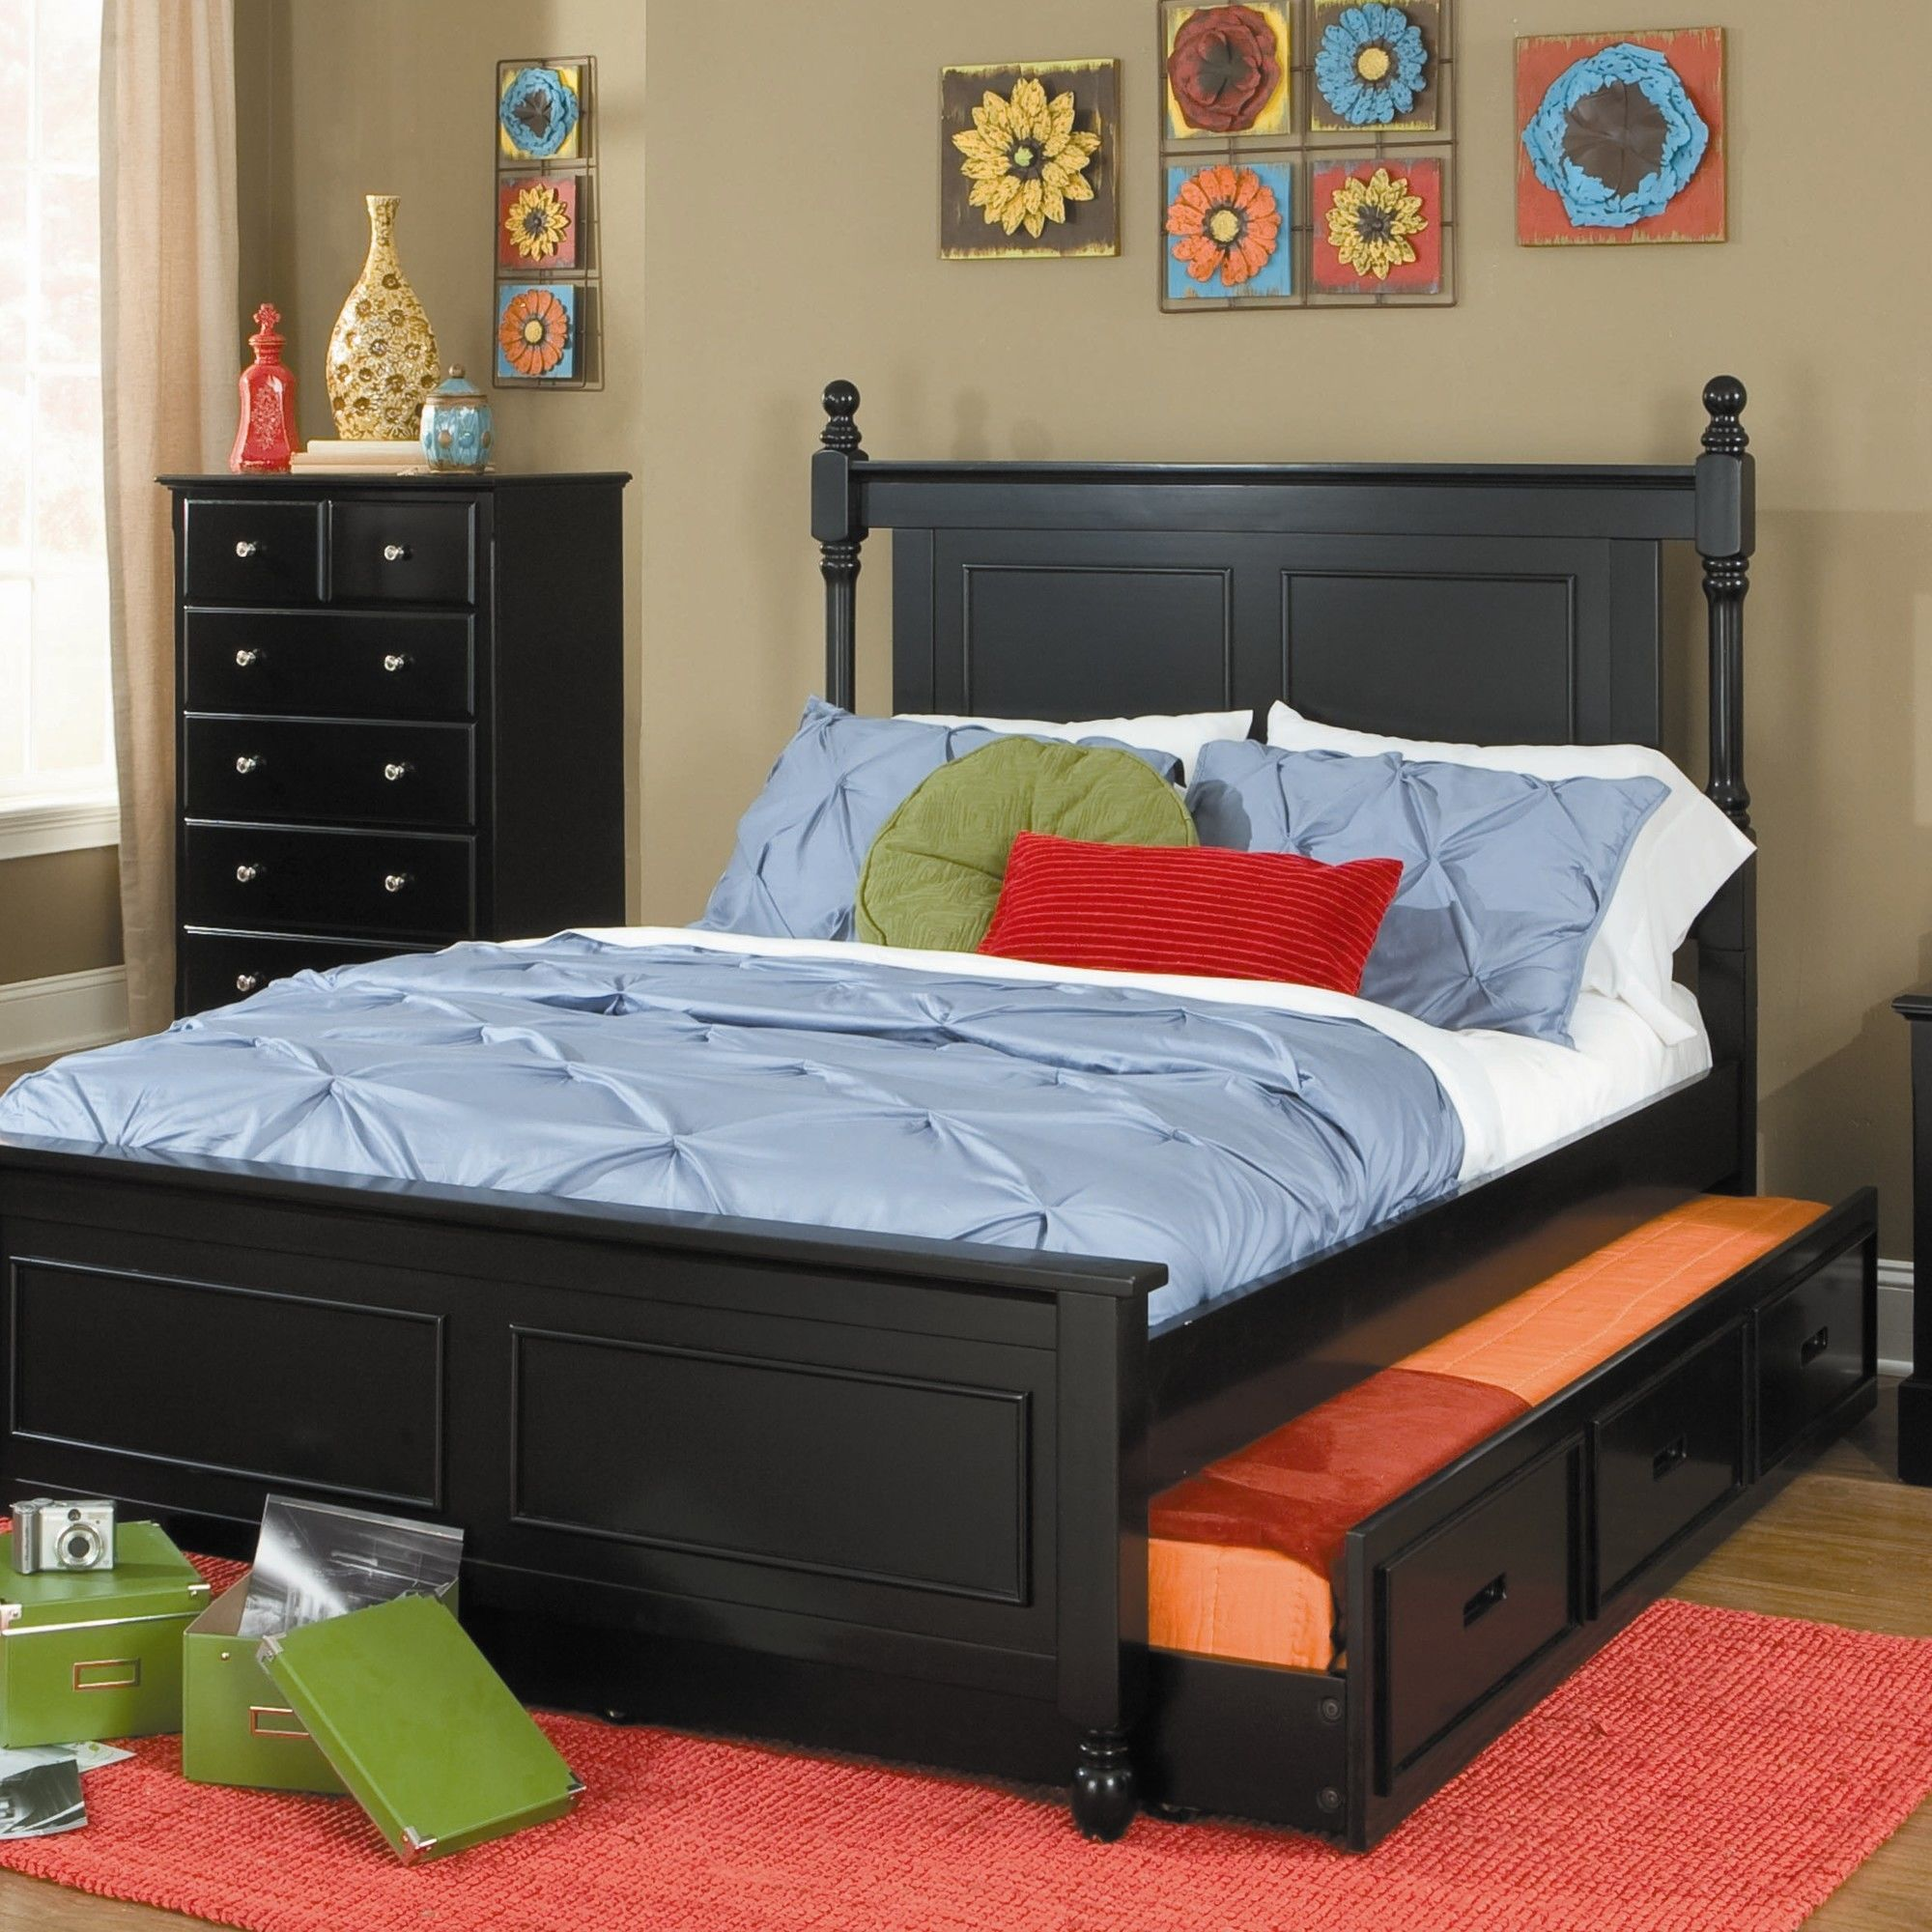 Baxton Studio Julienne Daybed With Trundle Bed Bath And Beyond Canada Daybed With Trundle Bed Full Daybed With Trundle Daybed With Trundle